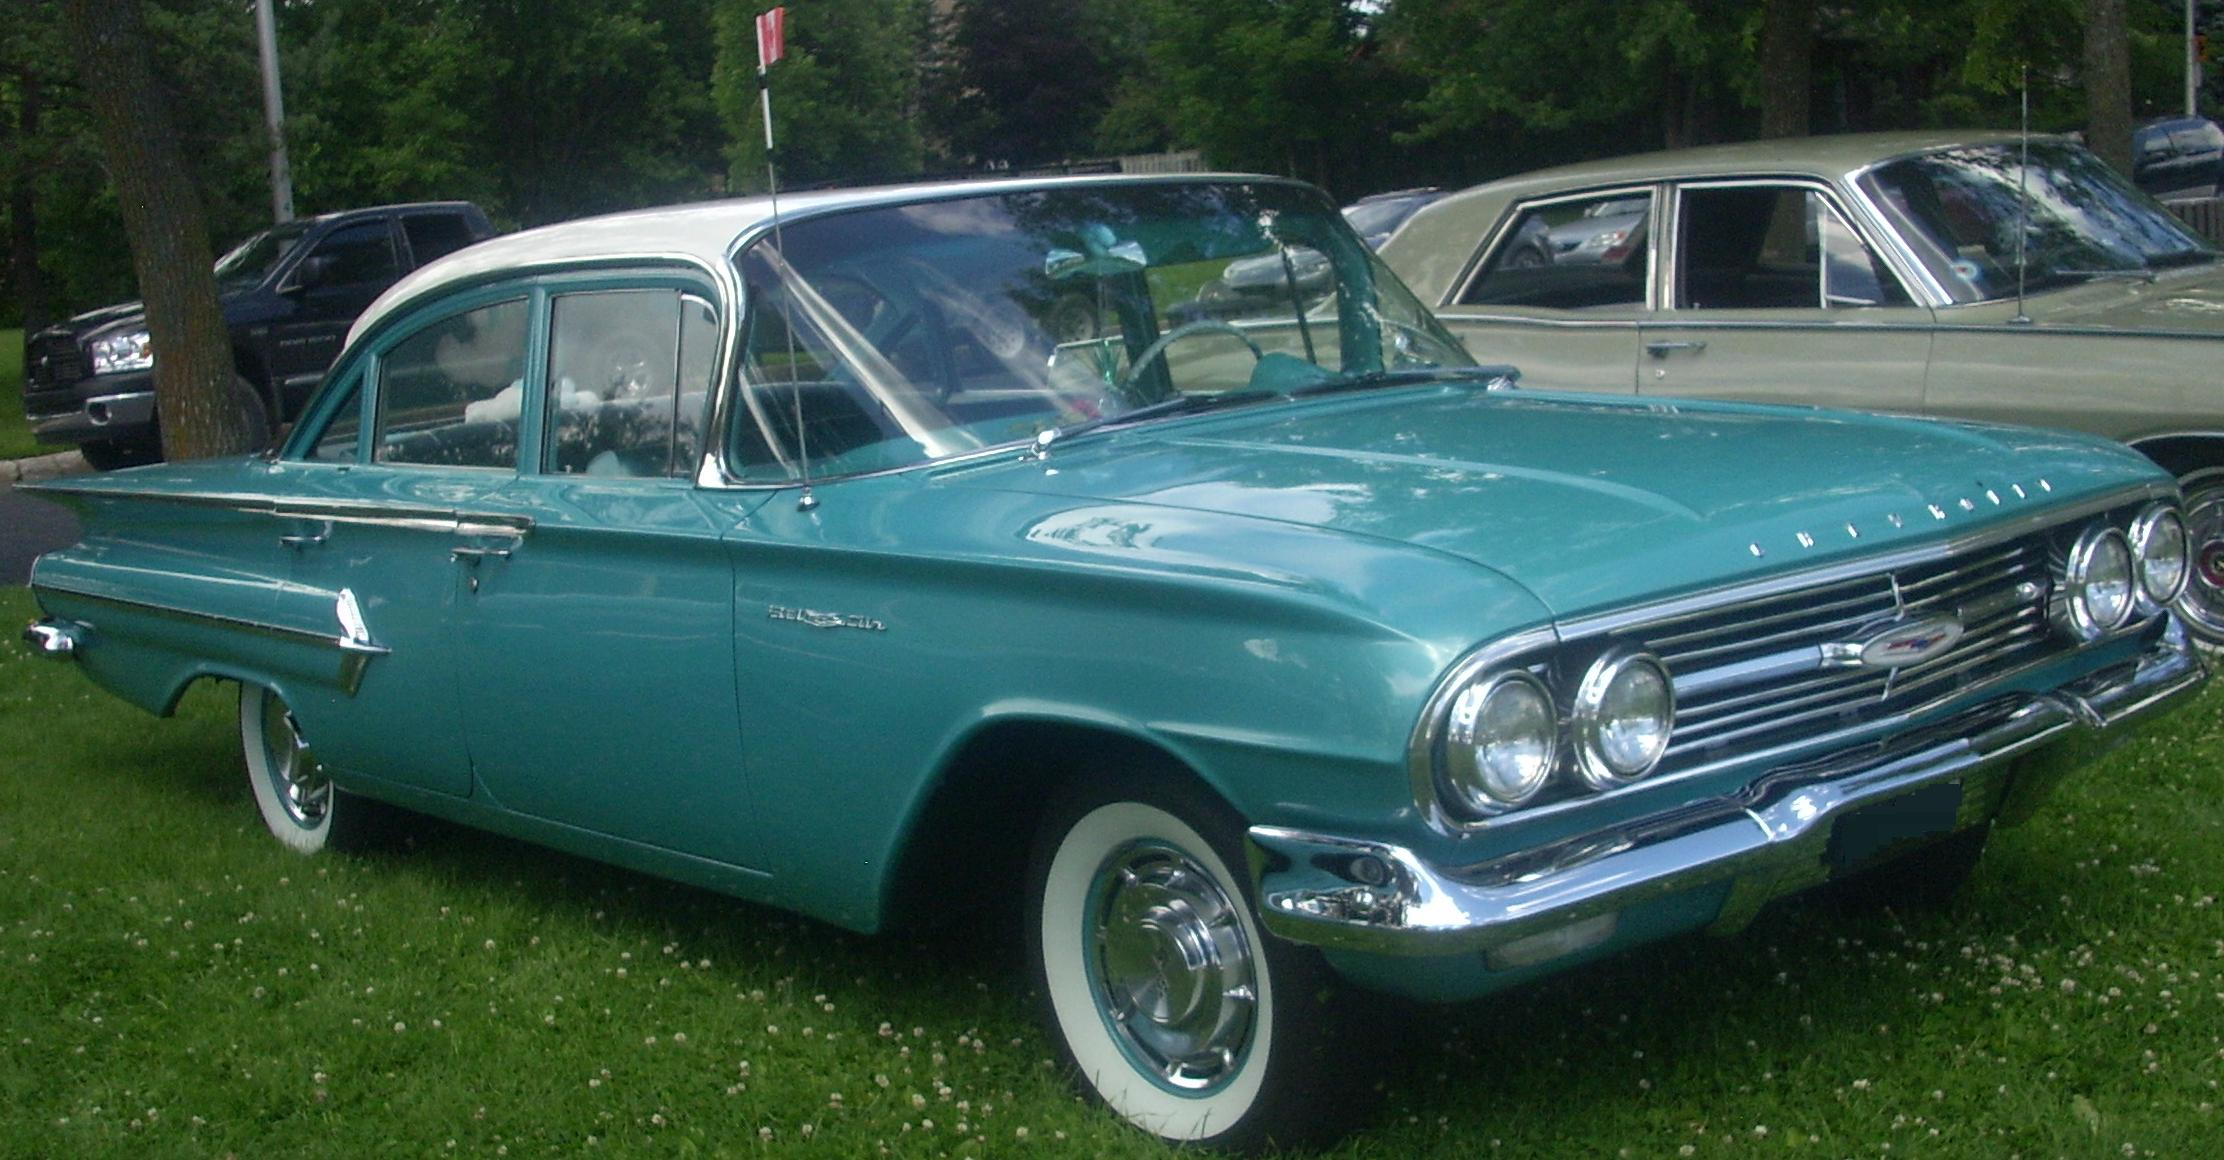 1960 Chevy Biscayne Station Wagon